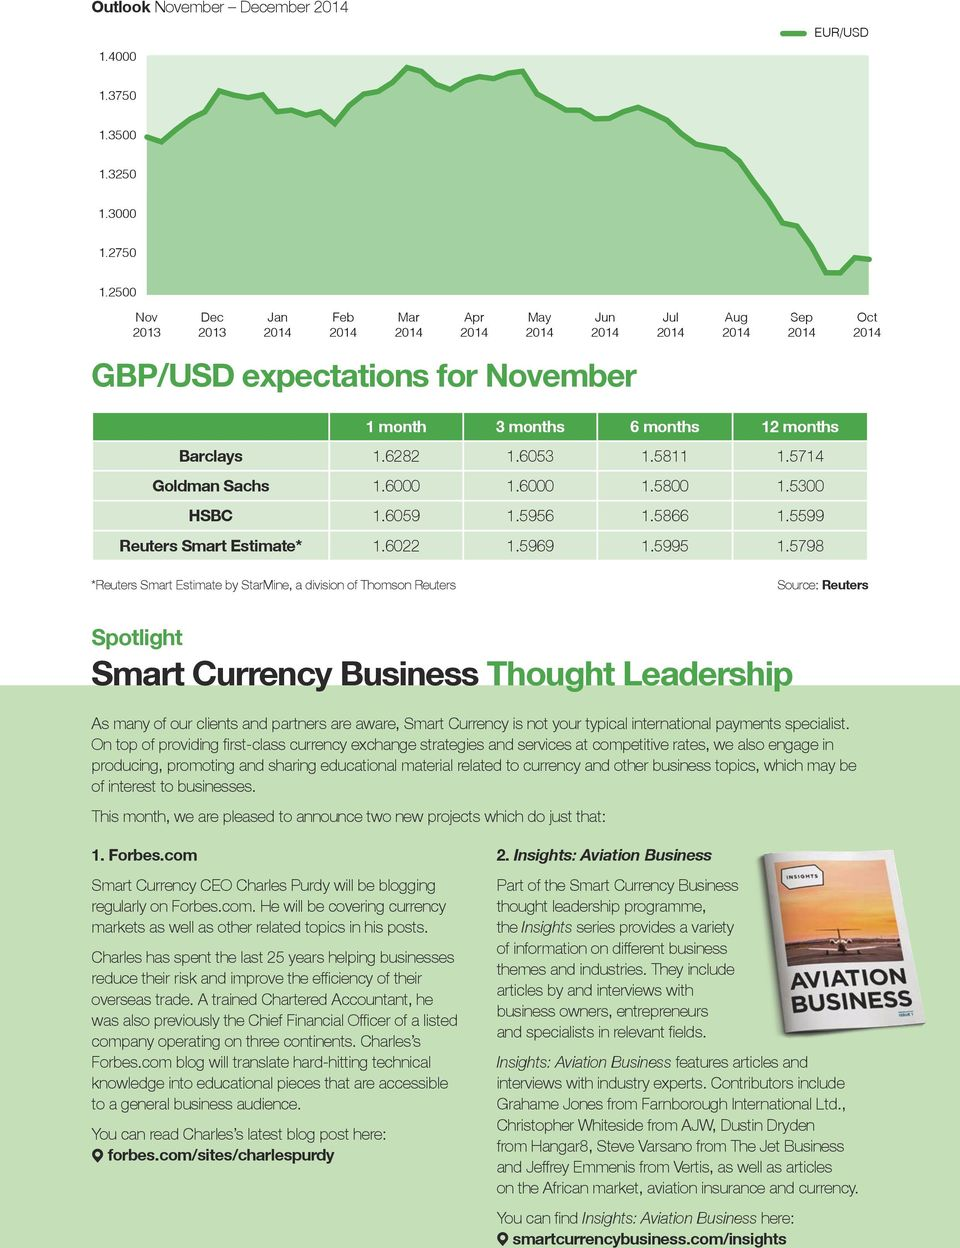 5798 *Reuters Smart Estimate by StarMine, a division of Thomson Reuters Source: Reuters Spotlight Smart Currency Business Thought Leadership As many of our clients and partners are aware, Smart